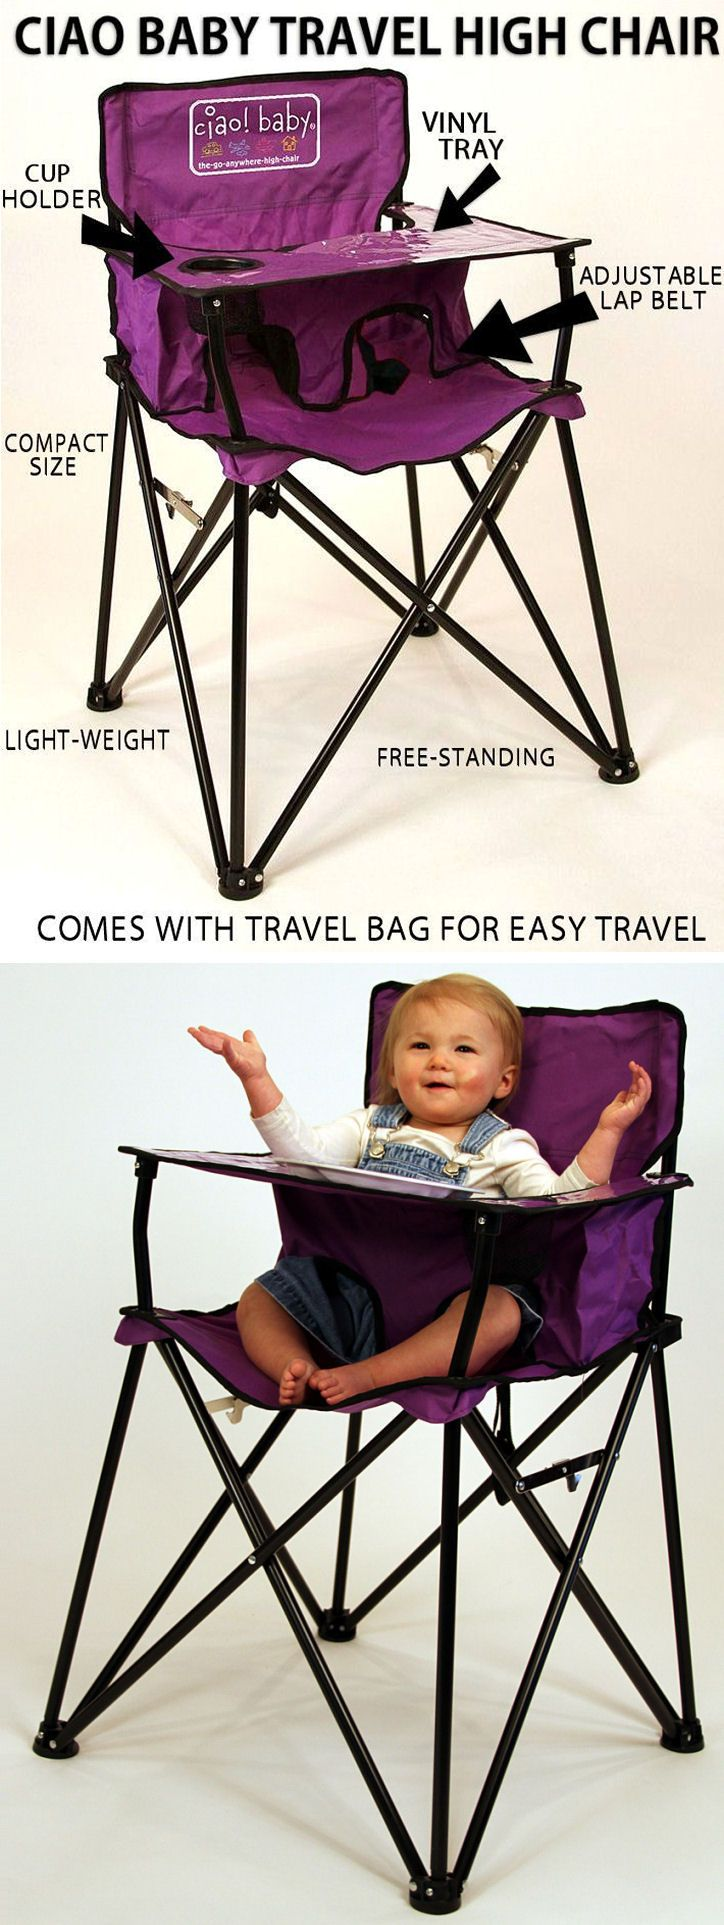 Portable Baby High Chair   Folds Up For Easy Travel. Great For Park, Camping, Re…